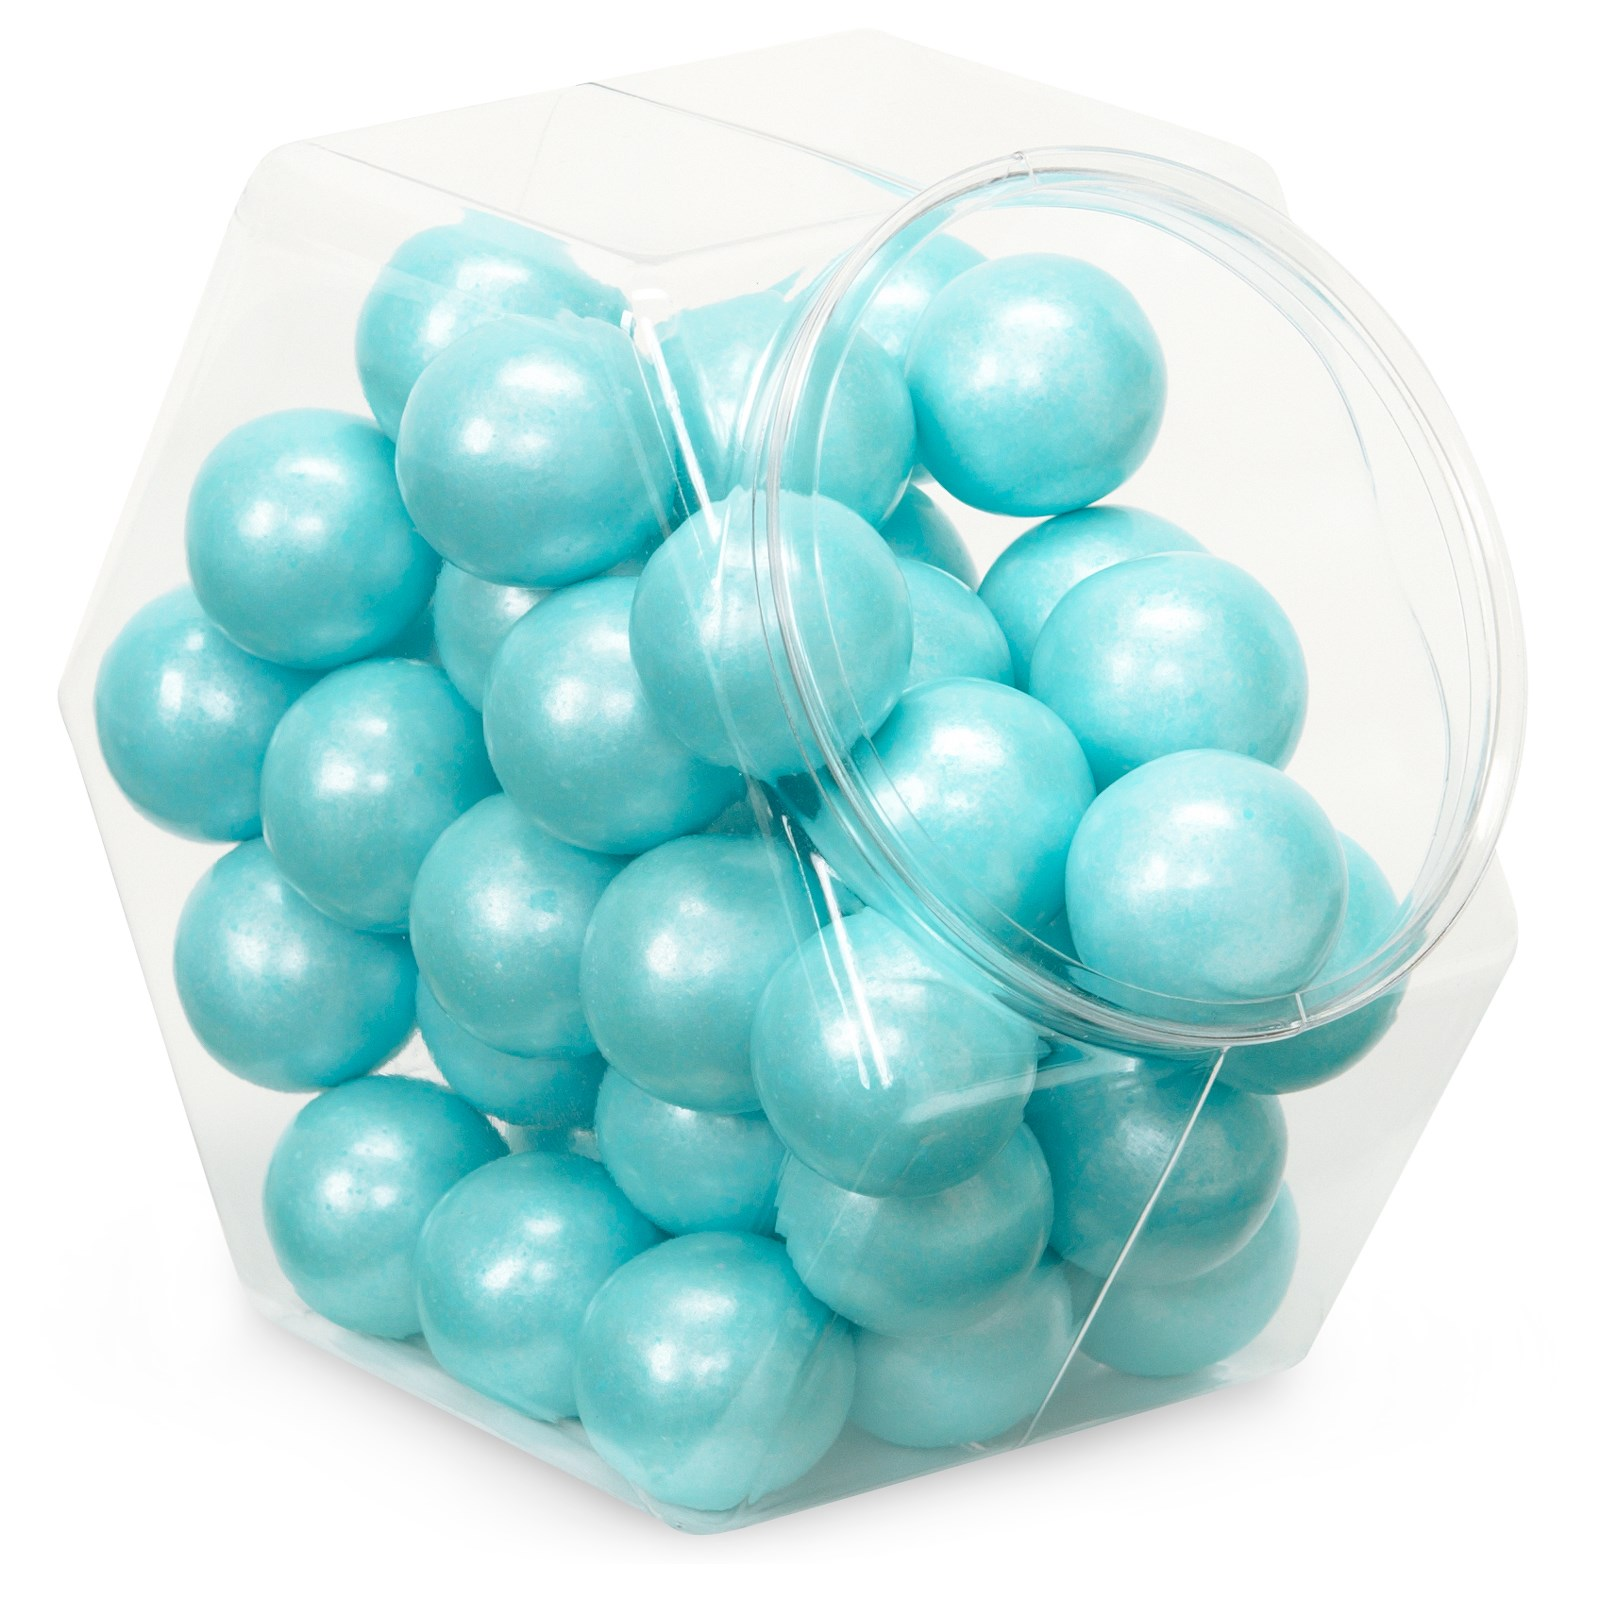 Disney Frozen party supplies gumballs